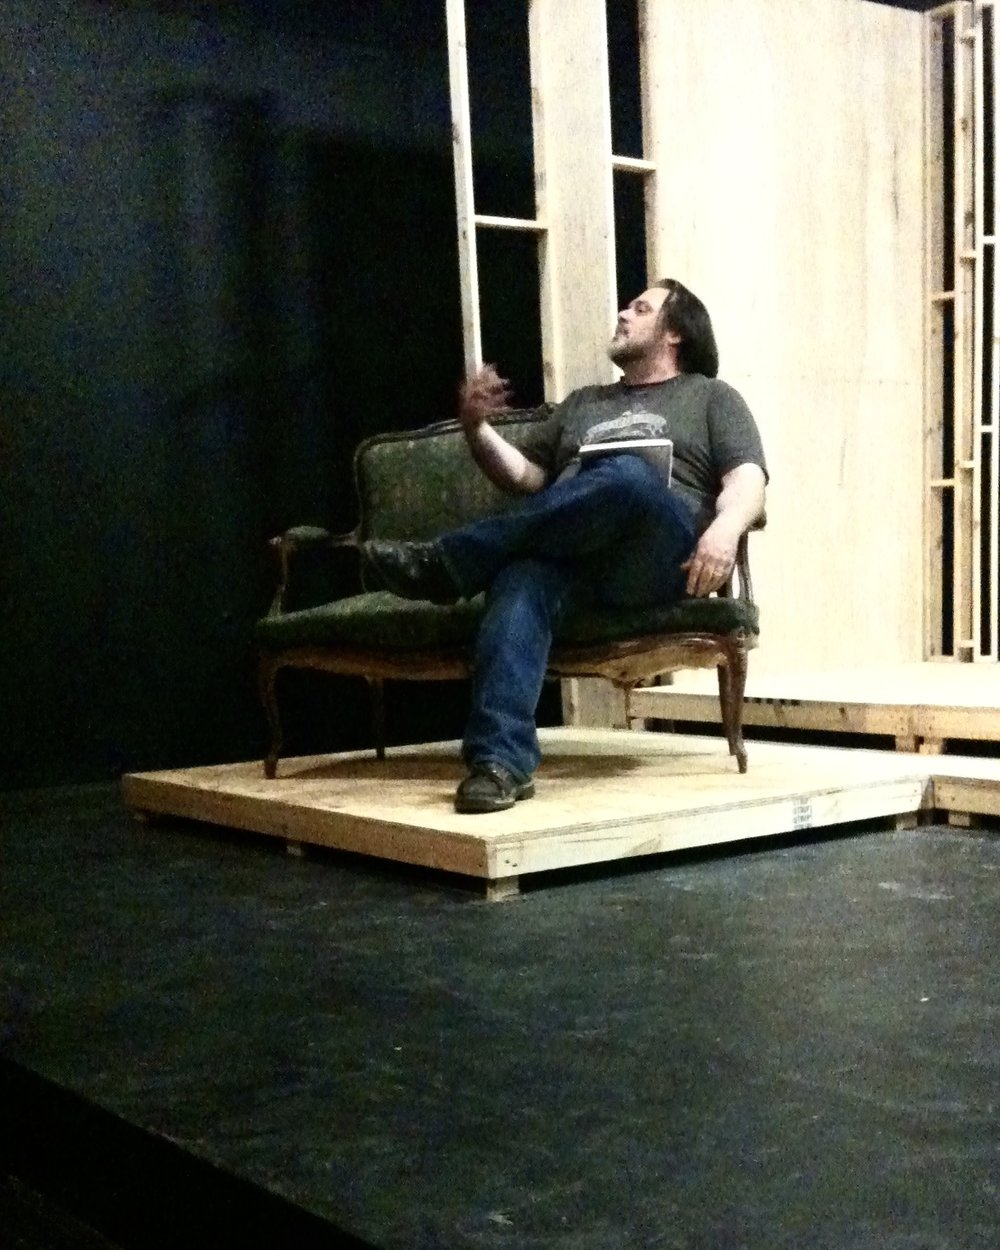 Director John Drouillard gives notes to the actors during a rehearsal for Lascaux Entertainment's 2011 production of  The Elephant Man , directed by Drouillard.  Photo by Natalie Drouillard.